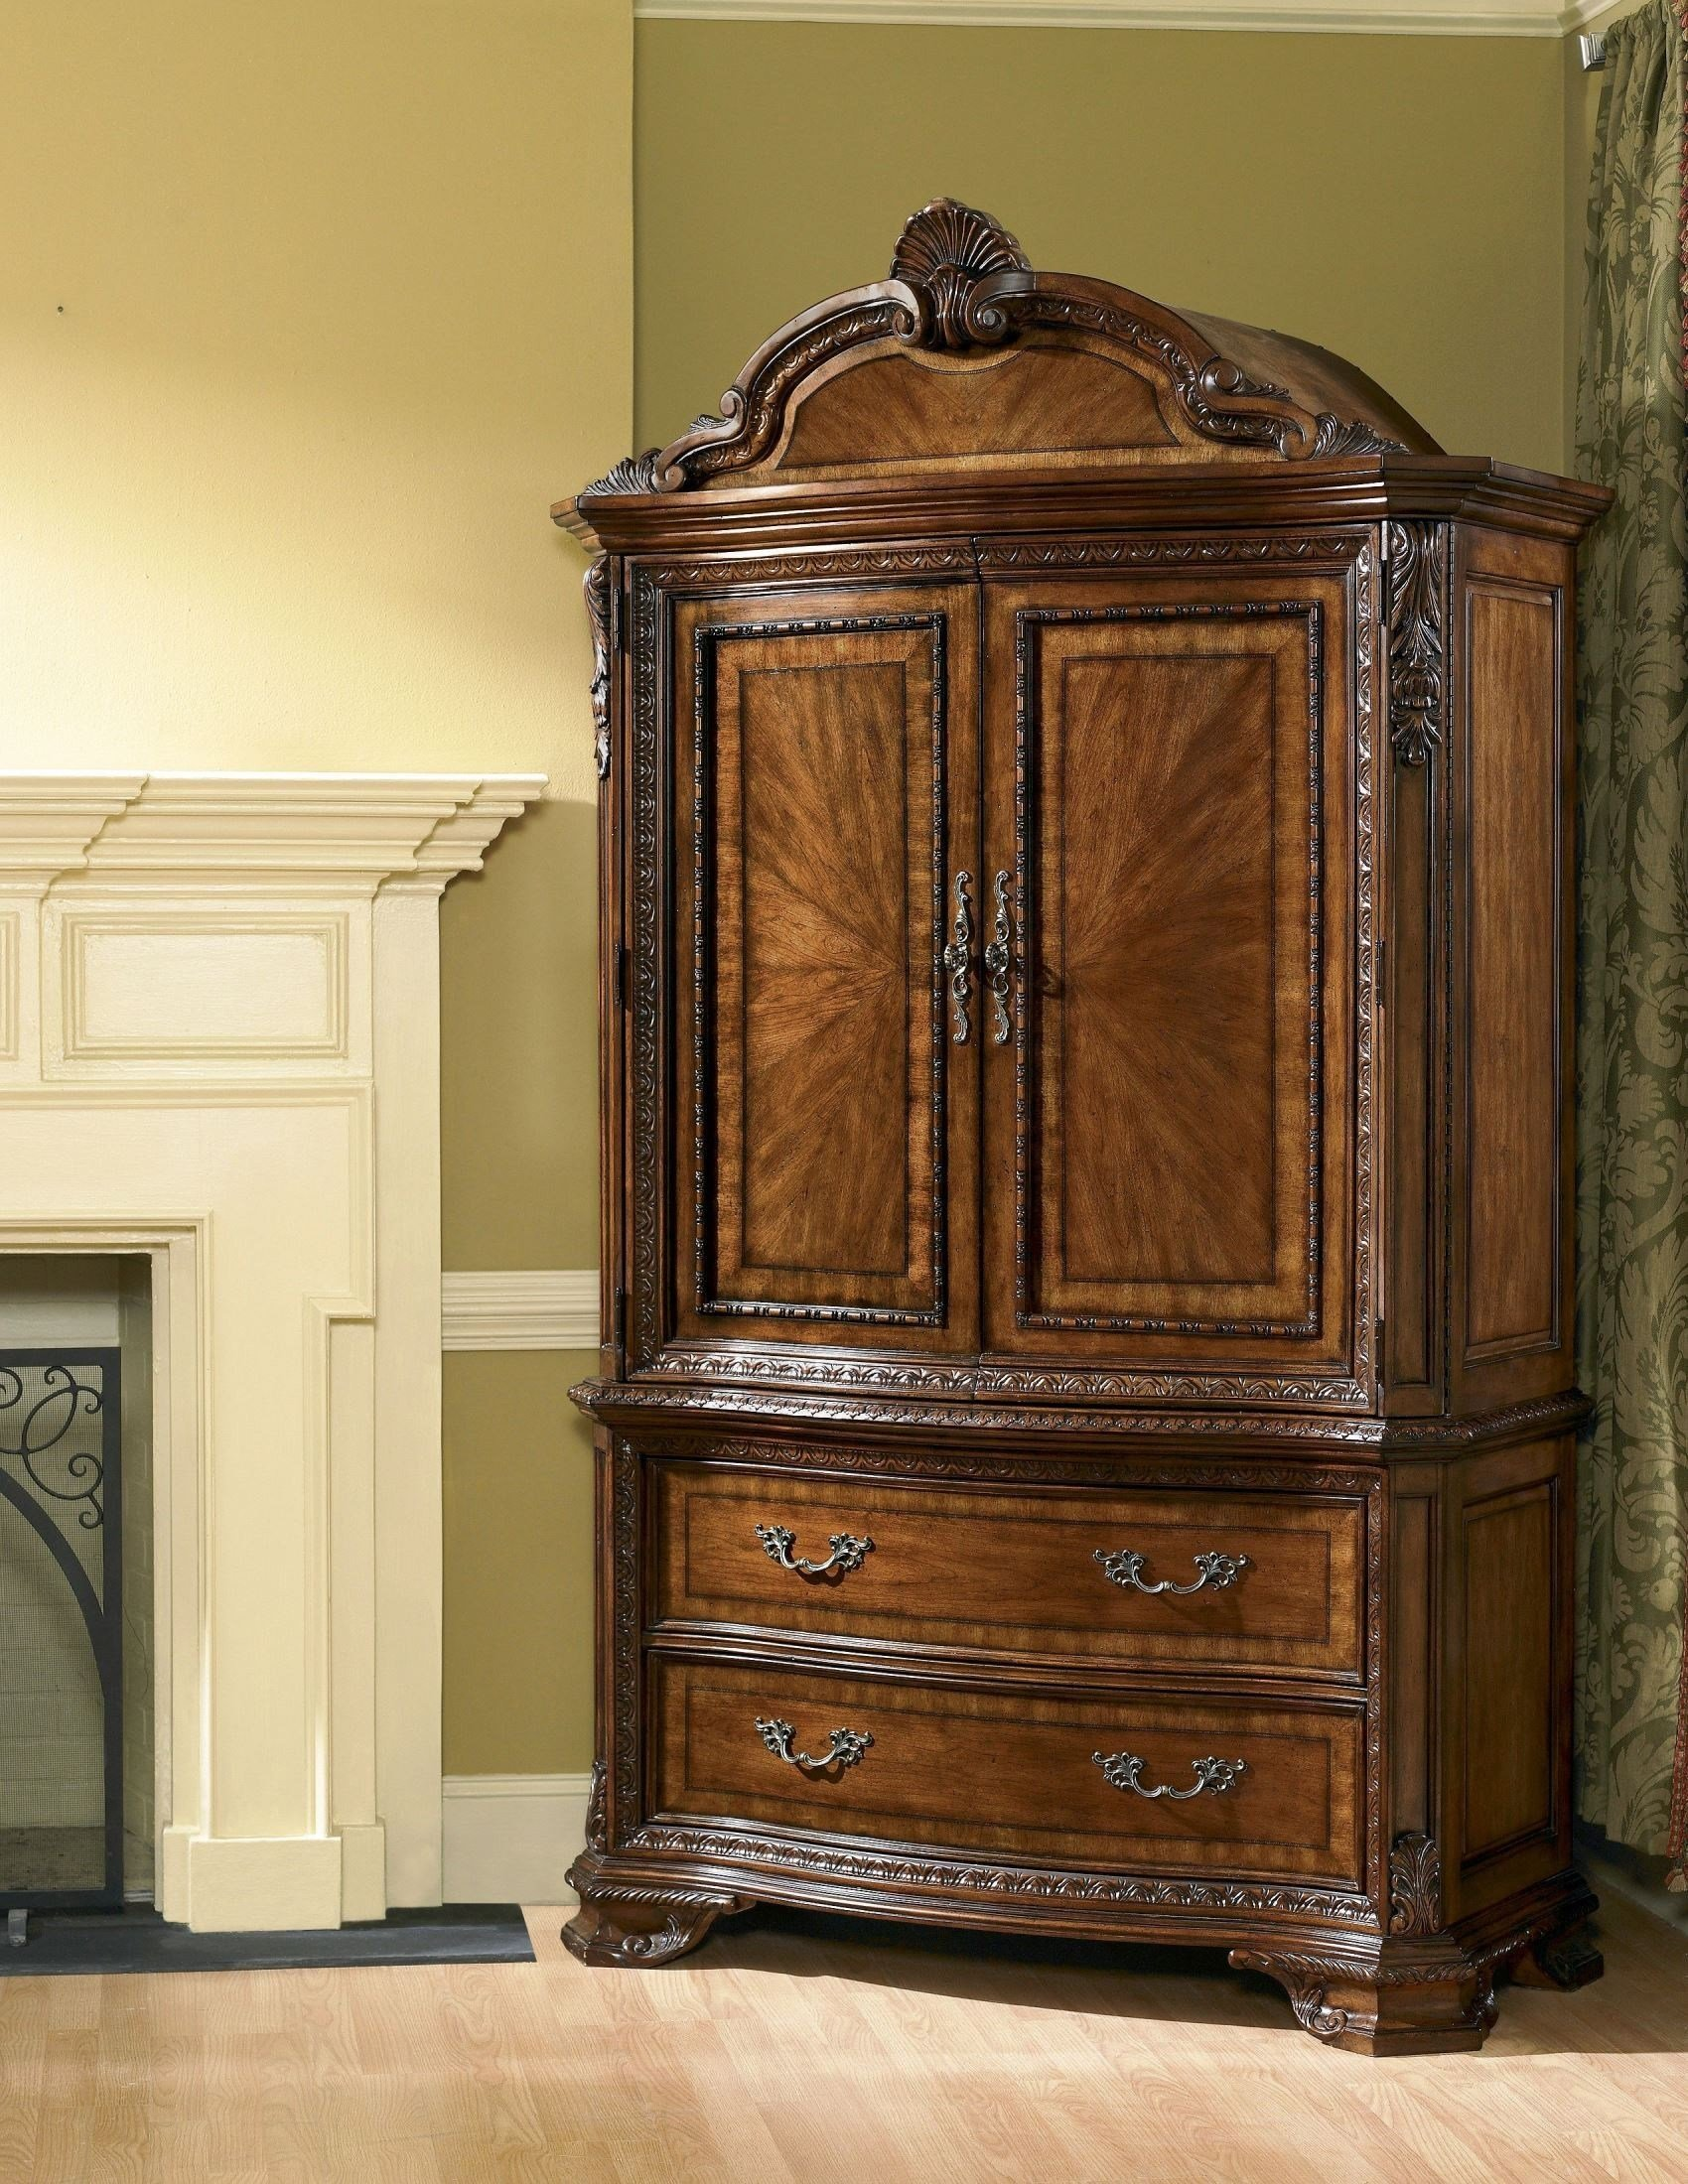 Best Old World Estate Bedroom Set From Art Furniture 143155 With Pictures